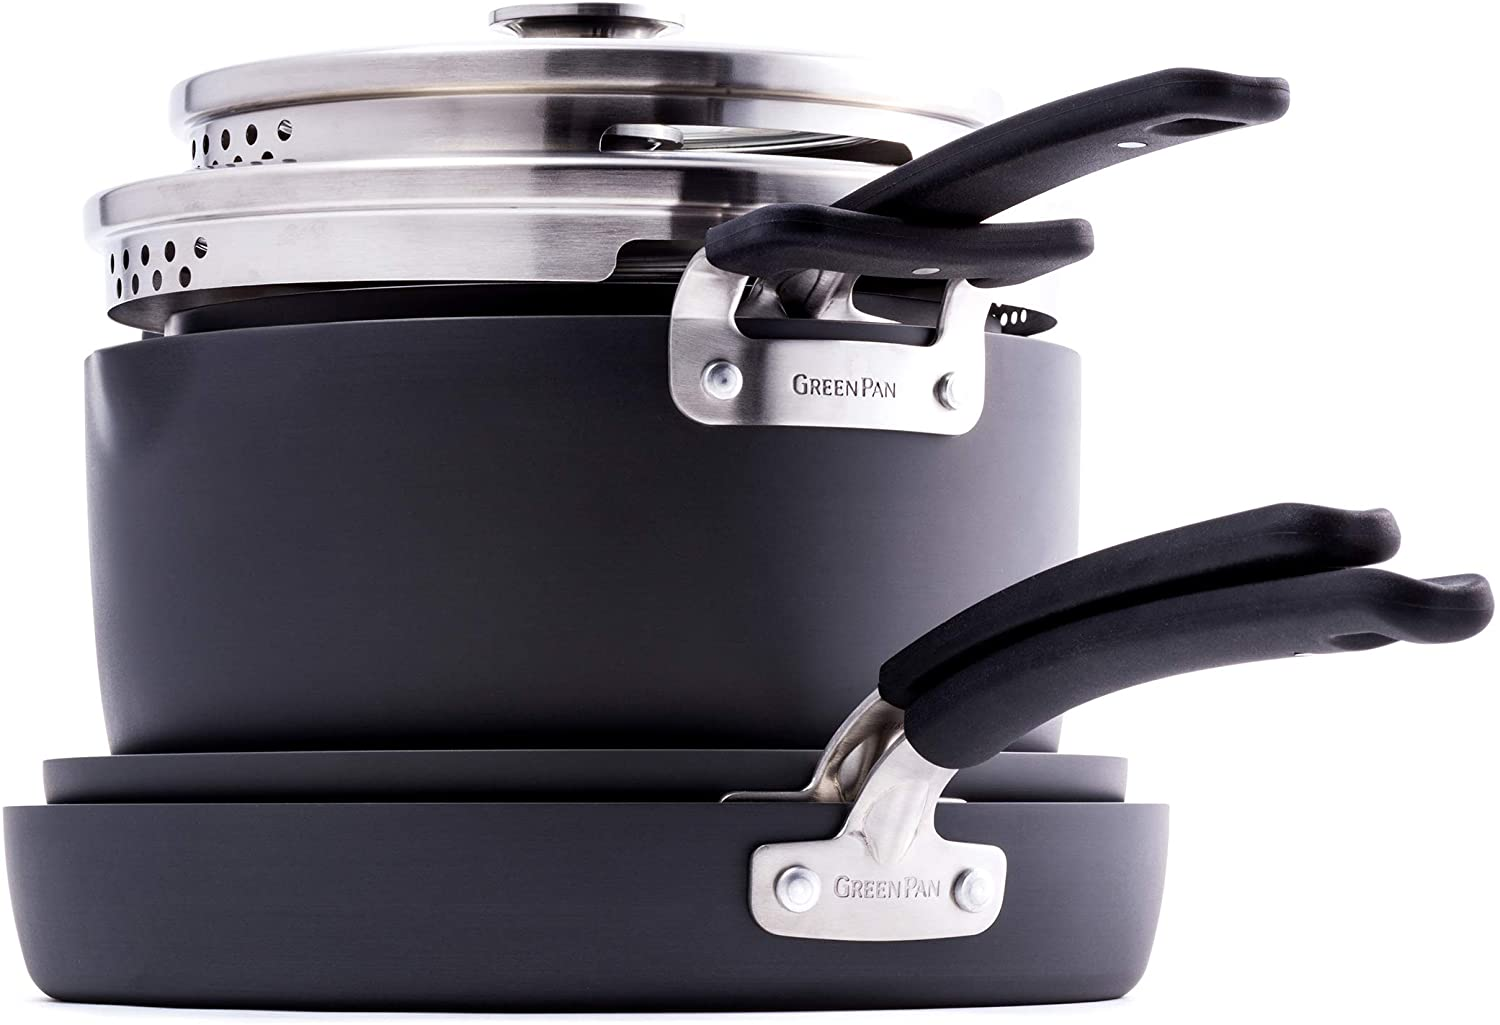 GreenPan Levels Stackable Hard Anodized Ceramic Nonstick, Cookware Pots and Pans Set